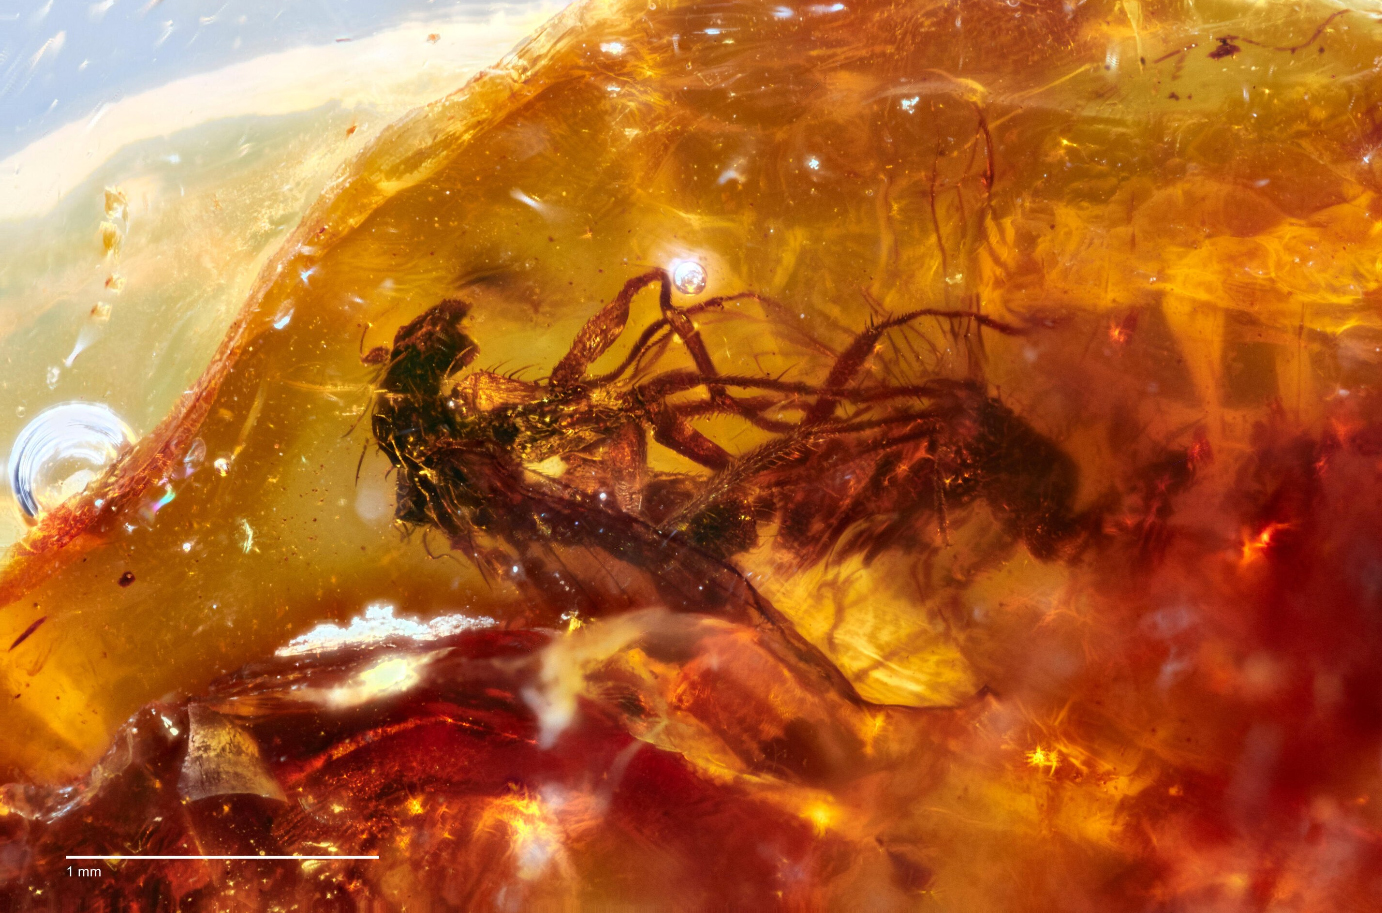 Scientists have found two mating flies that froze in amber 40 million years ago